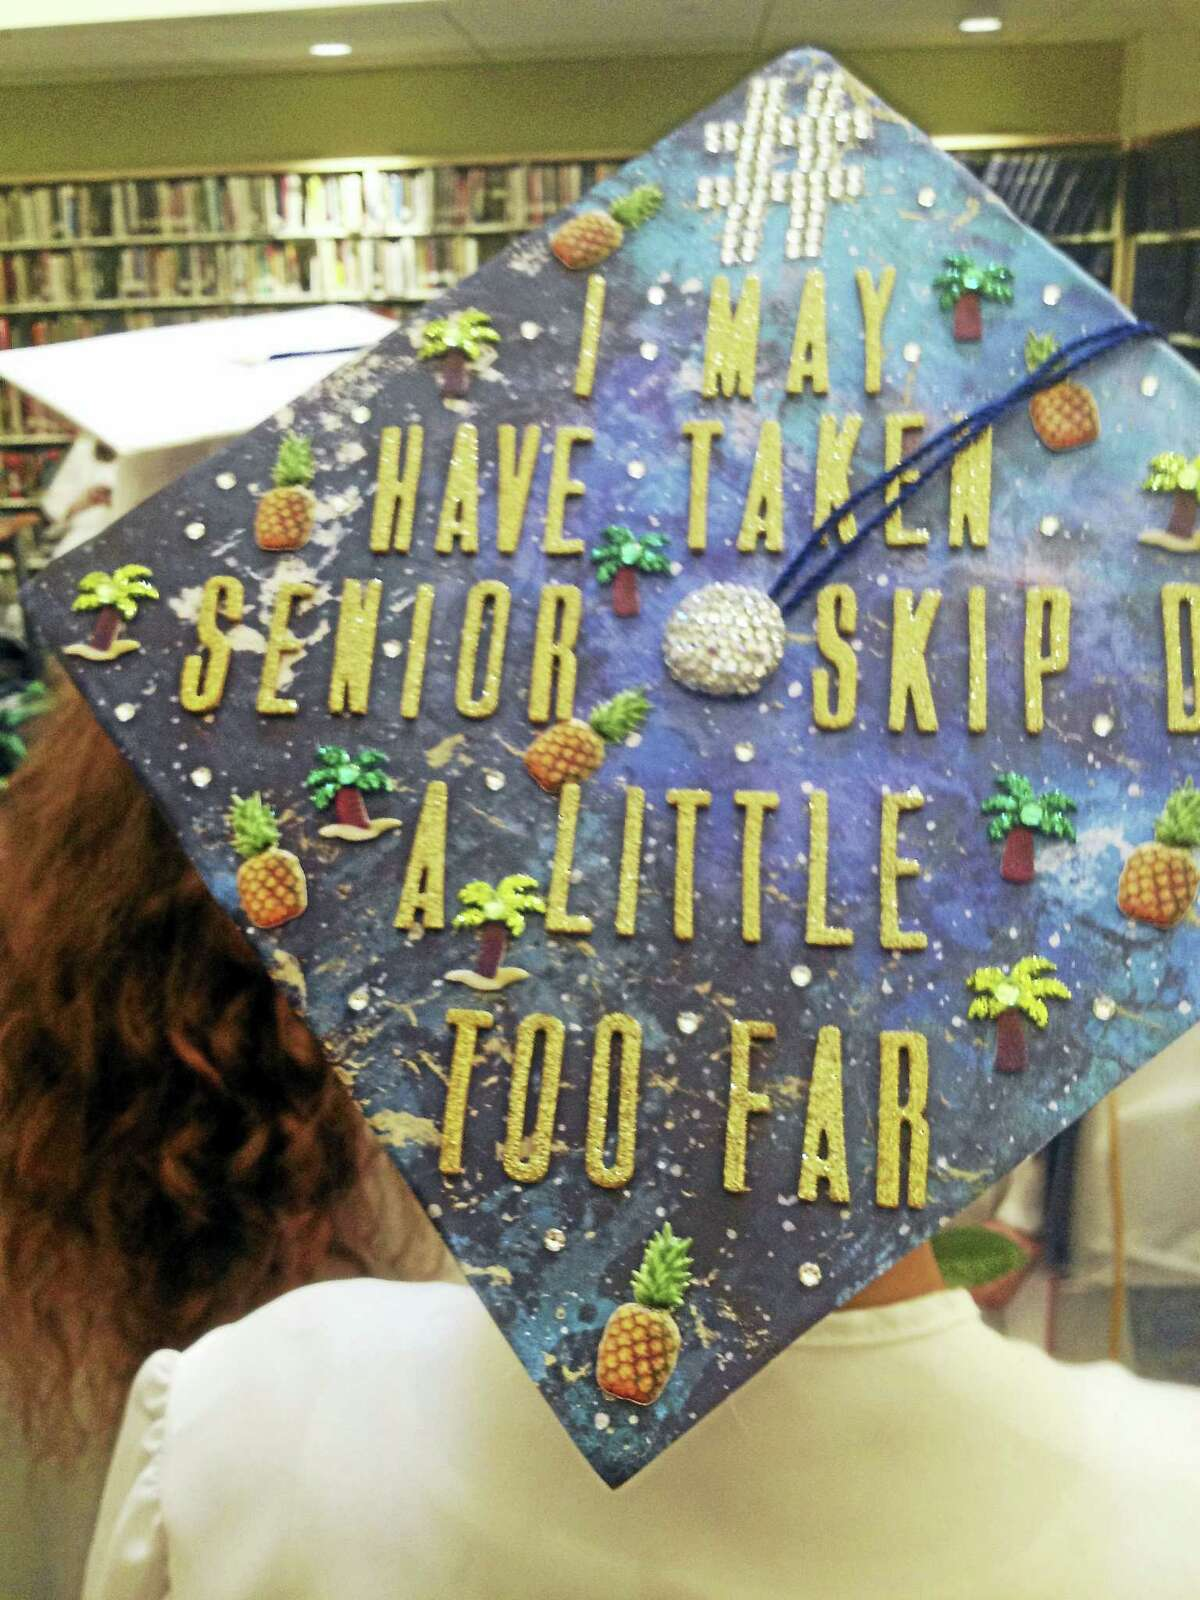 Lee decorated the top of her mortarboard with miniature palm trees and pineapples.